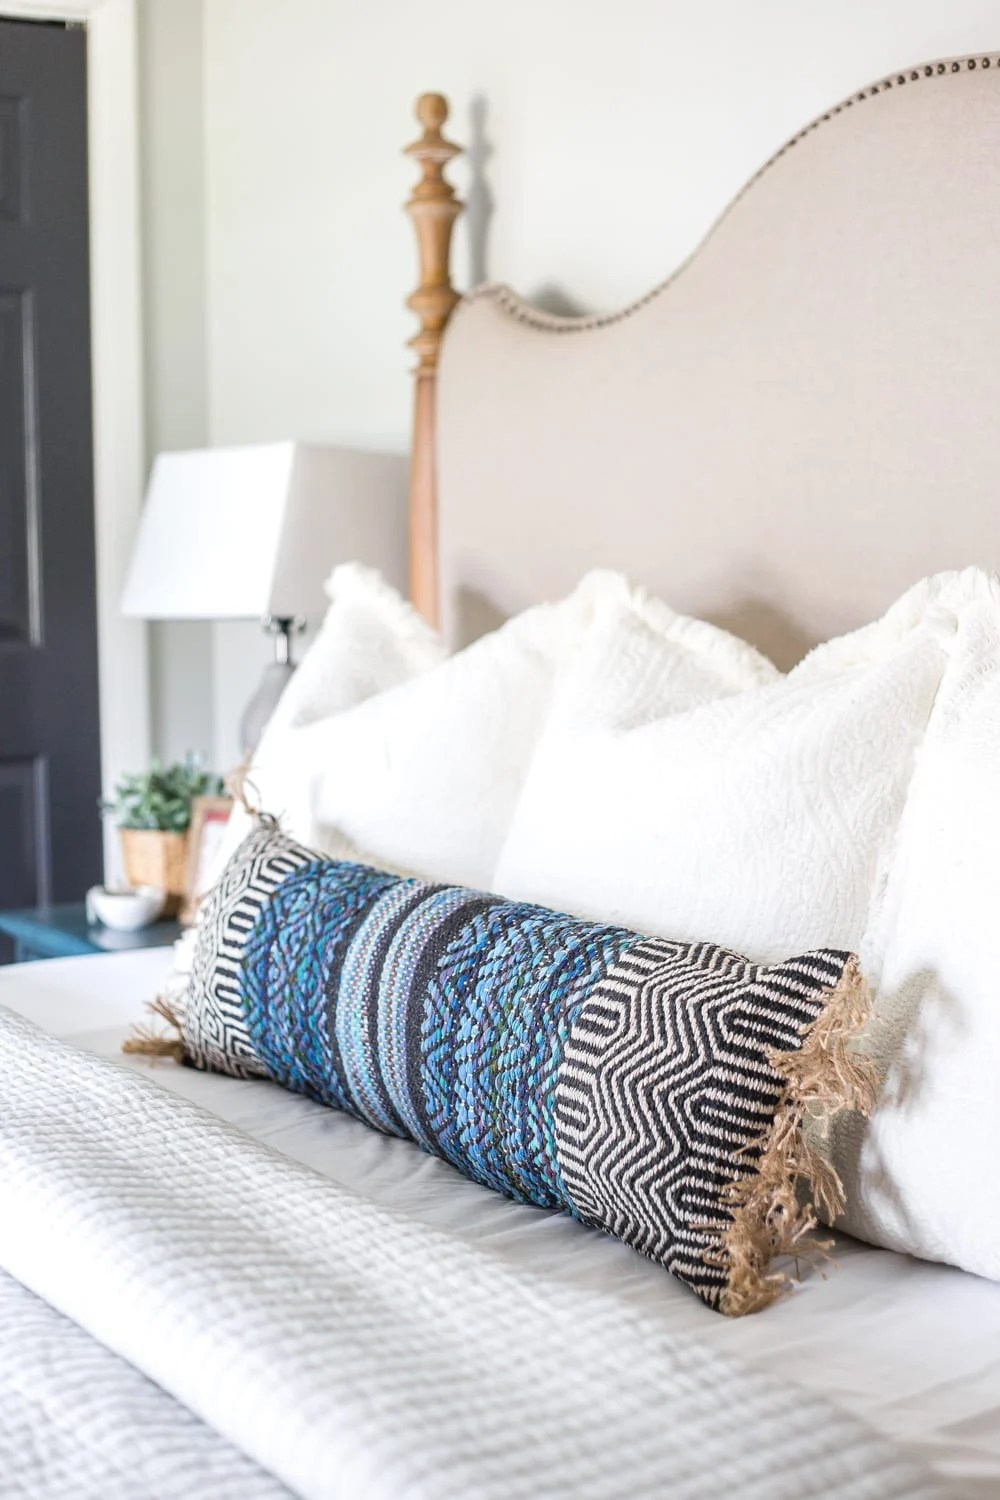 3 items you can repurpose into DIY no-sew throw pillows | How to make a throw pillow from a rug.